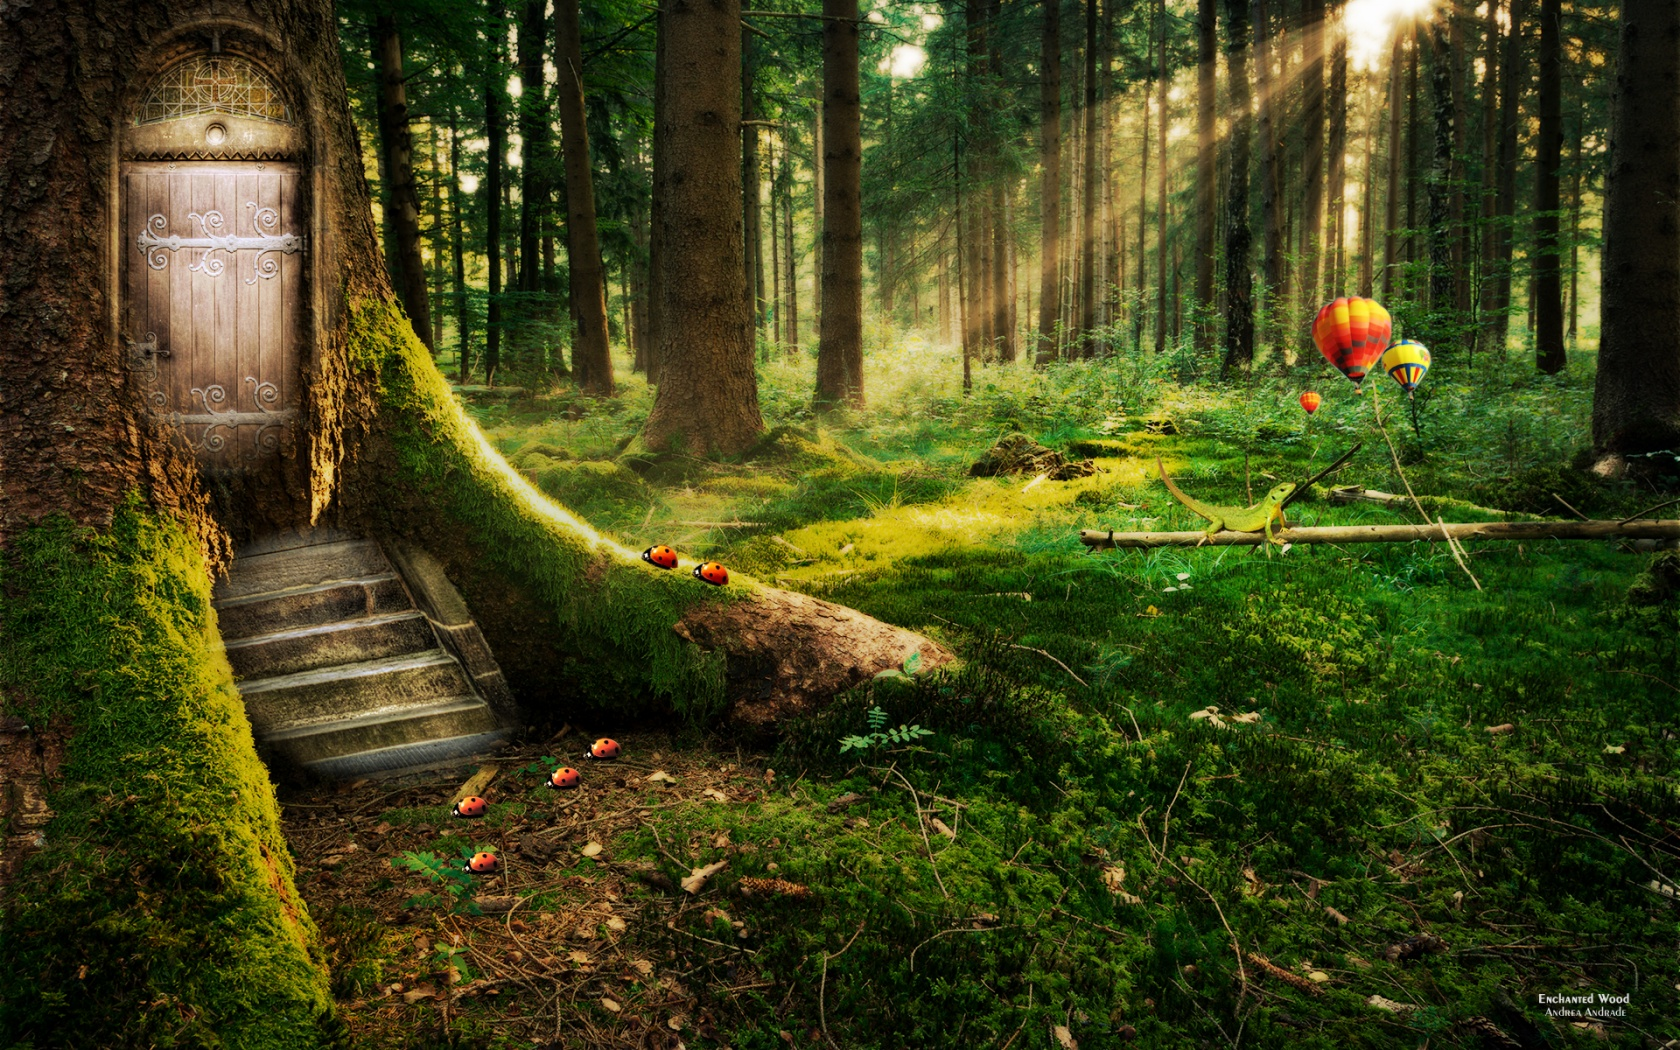 Enchanted forest wallpaper for home wallpapersafari for 90s wallpaper home